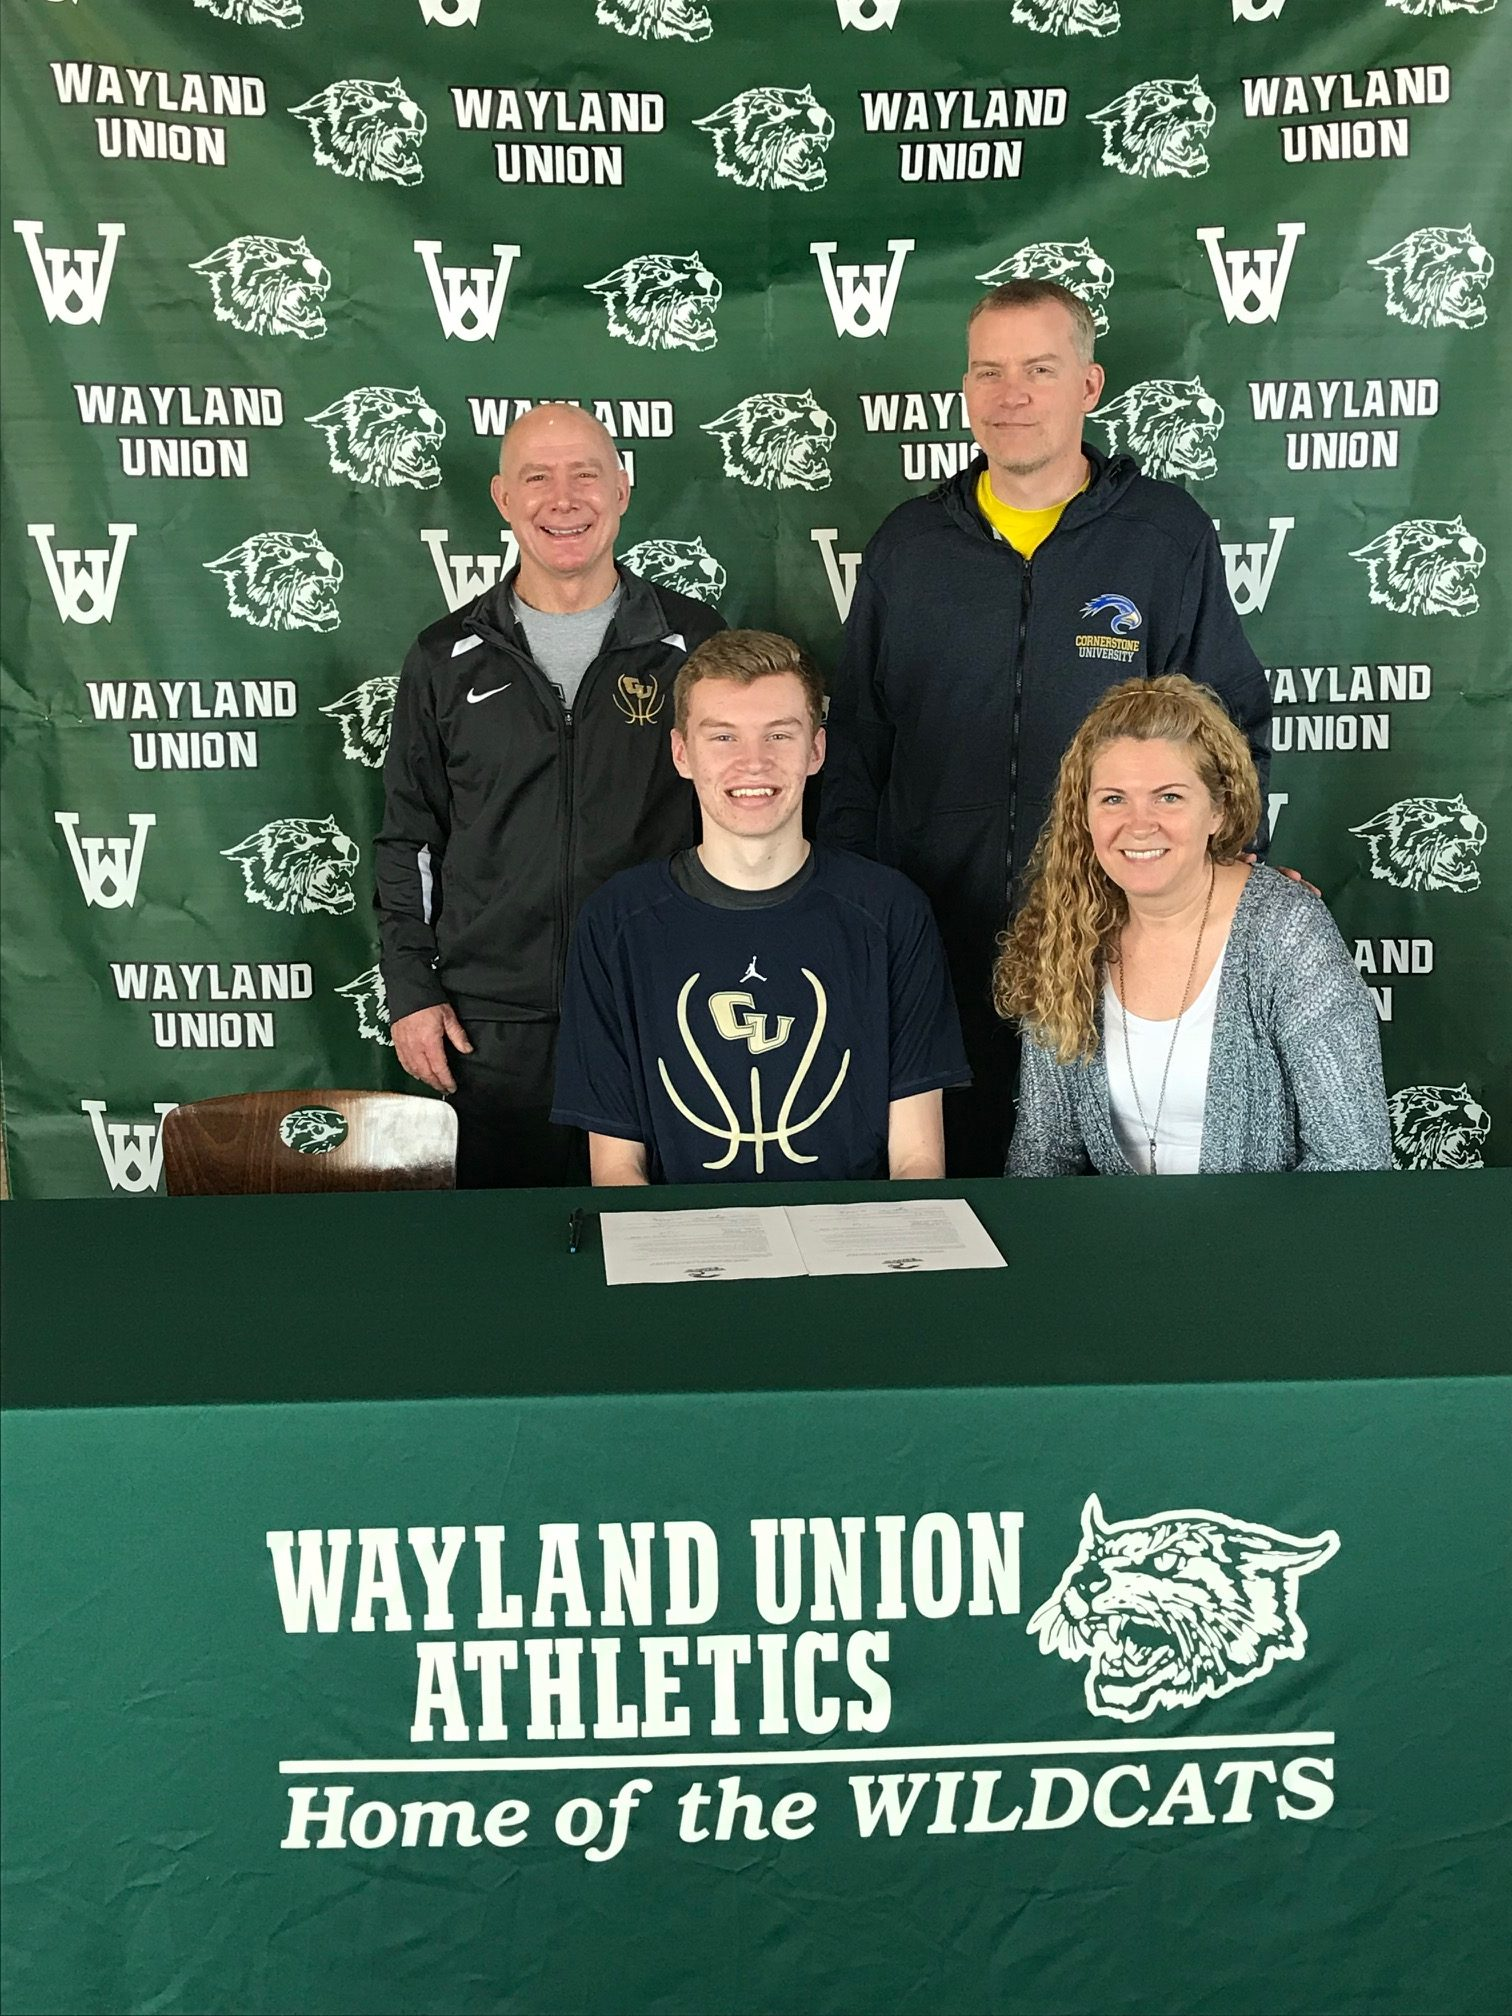 Carter Nyp Signs to Continue his Basketball Career at Cornerstone University